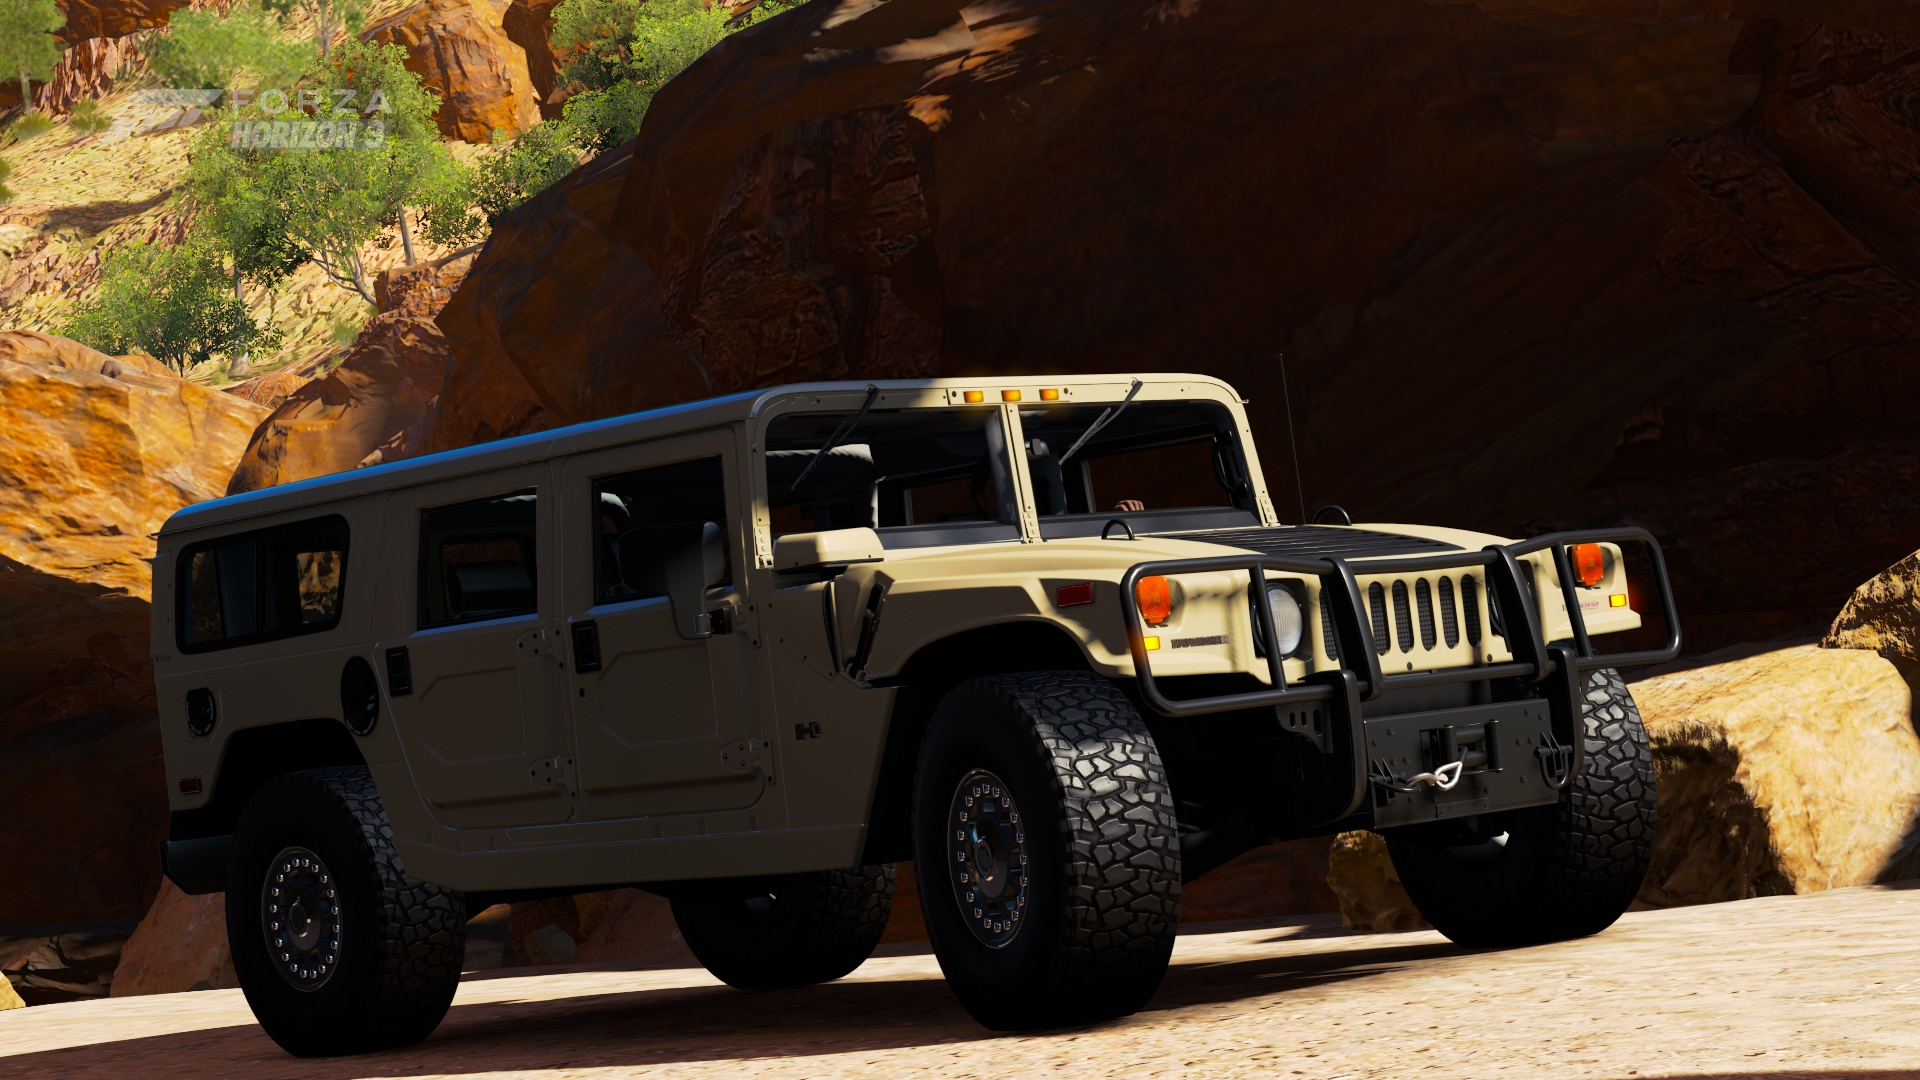 2006 Hummer H1 Alpha Photo By Brokenvegetable